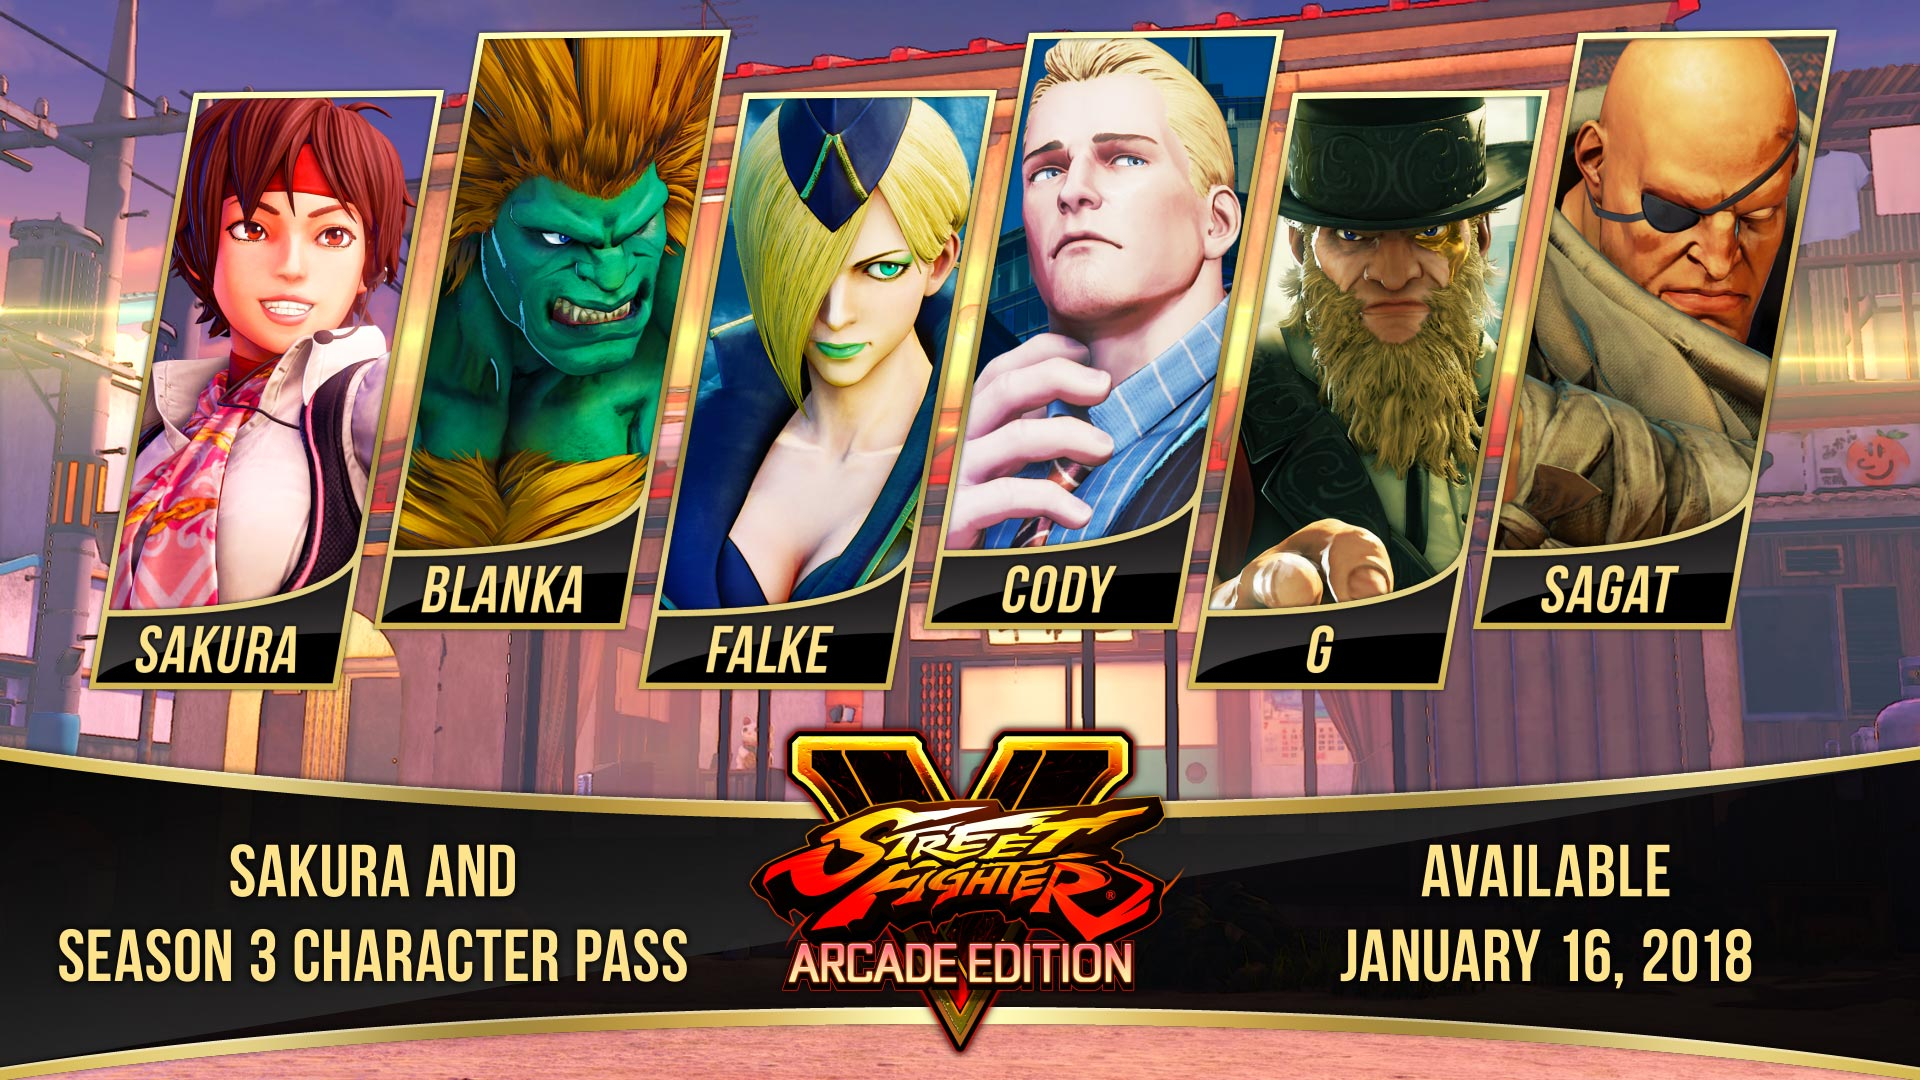 Blanka in Street Fighter 5: Arcade Edition 10 out of 11 image gallery